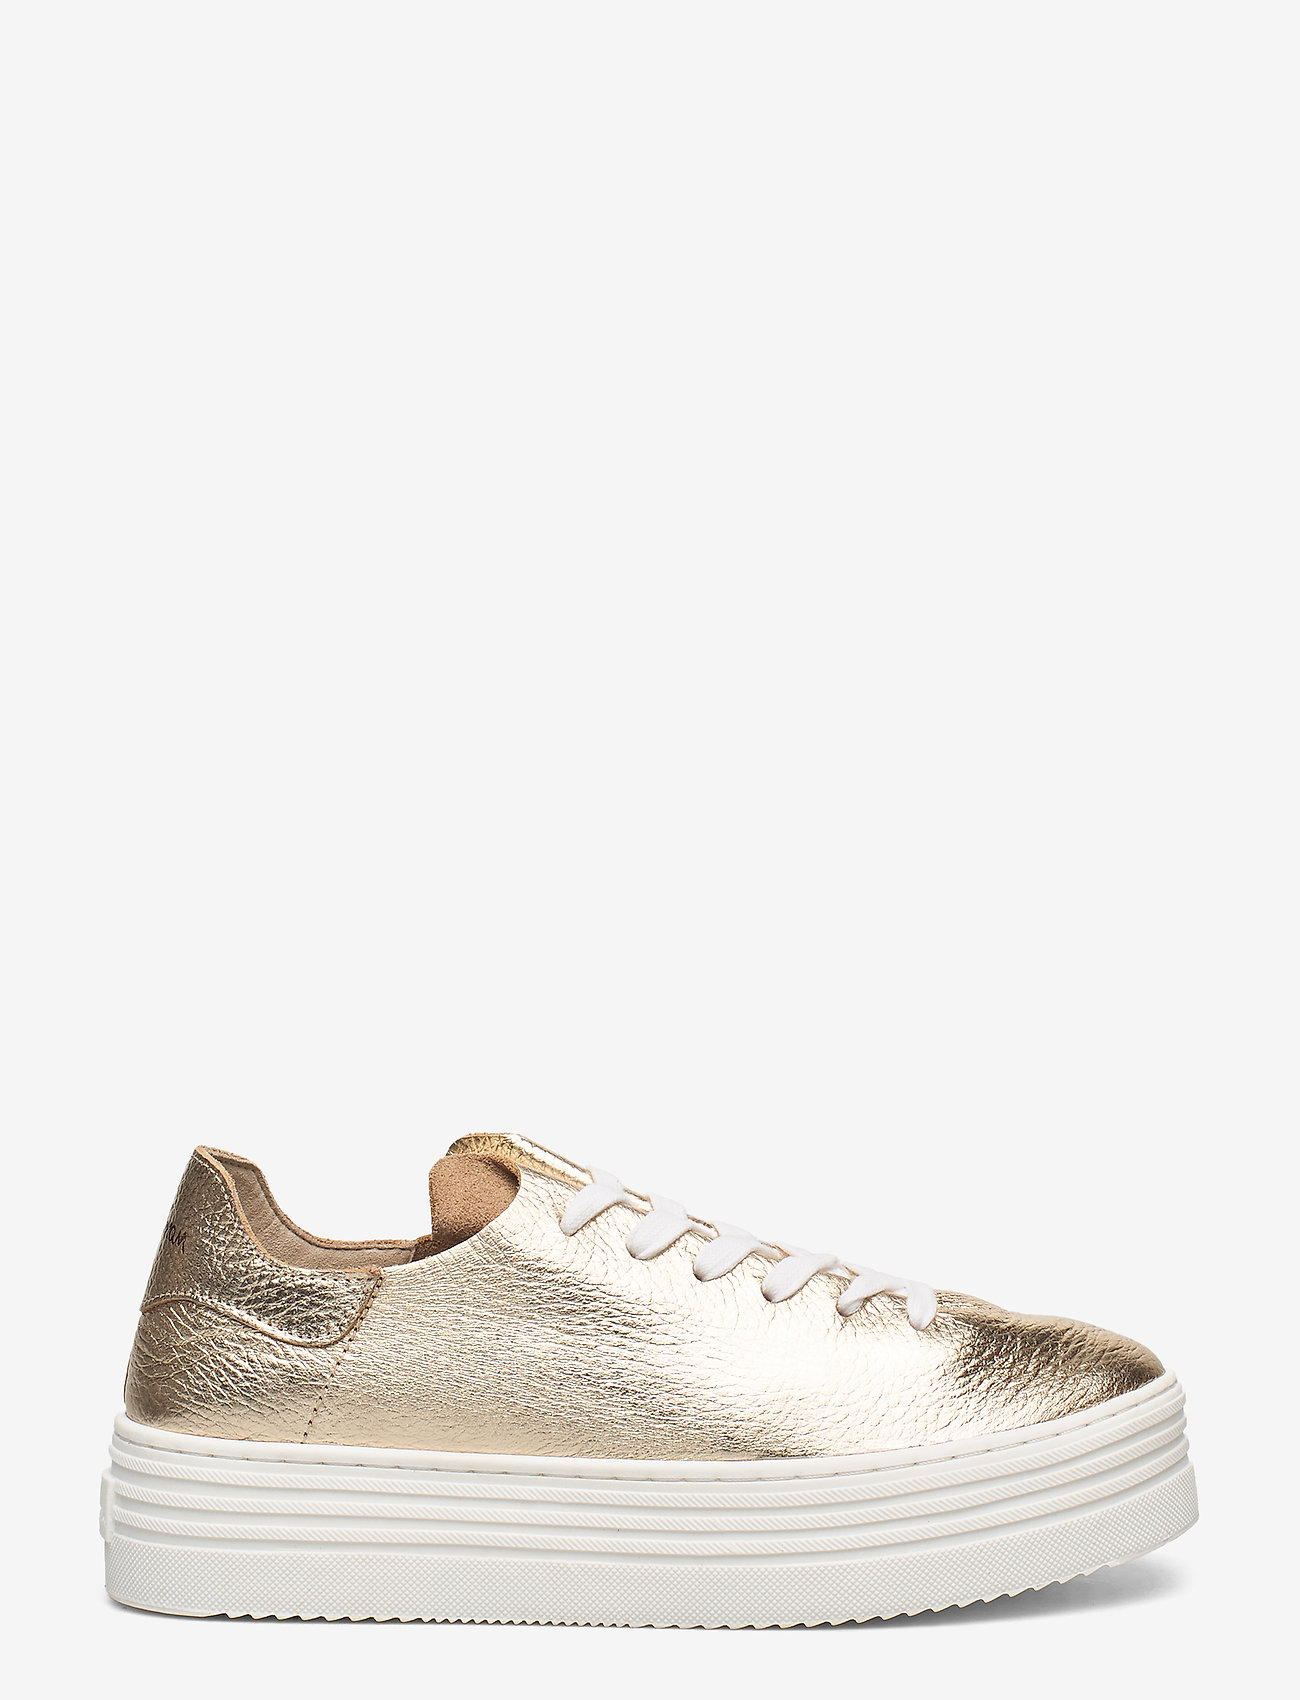 Sam Edelman - PIPPY TUMBLED MET LEATHER - lage sneakers - molten gold - 1